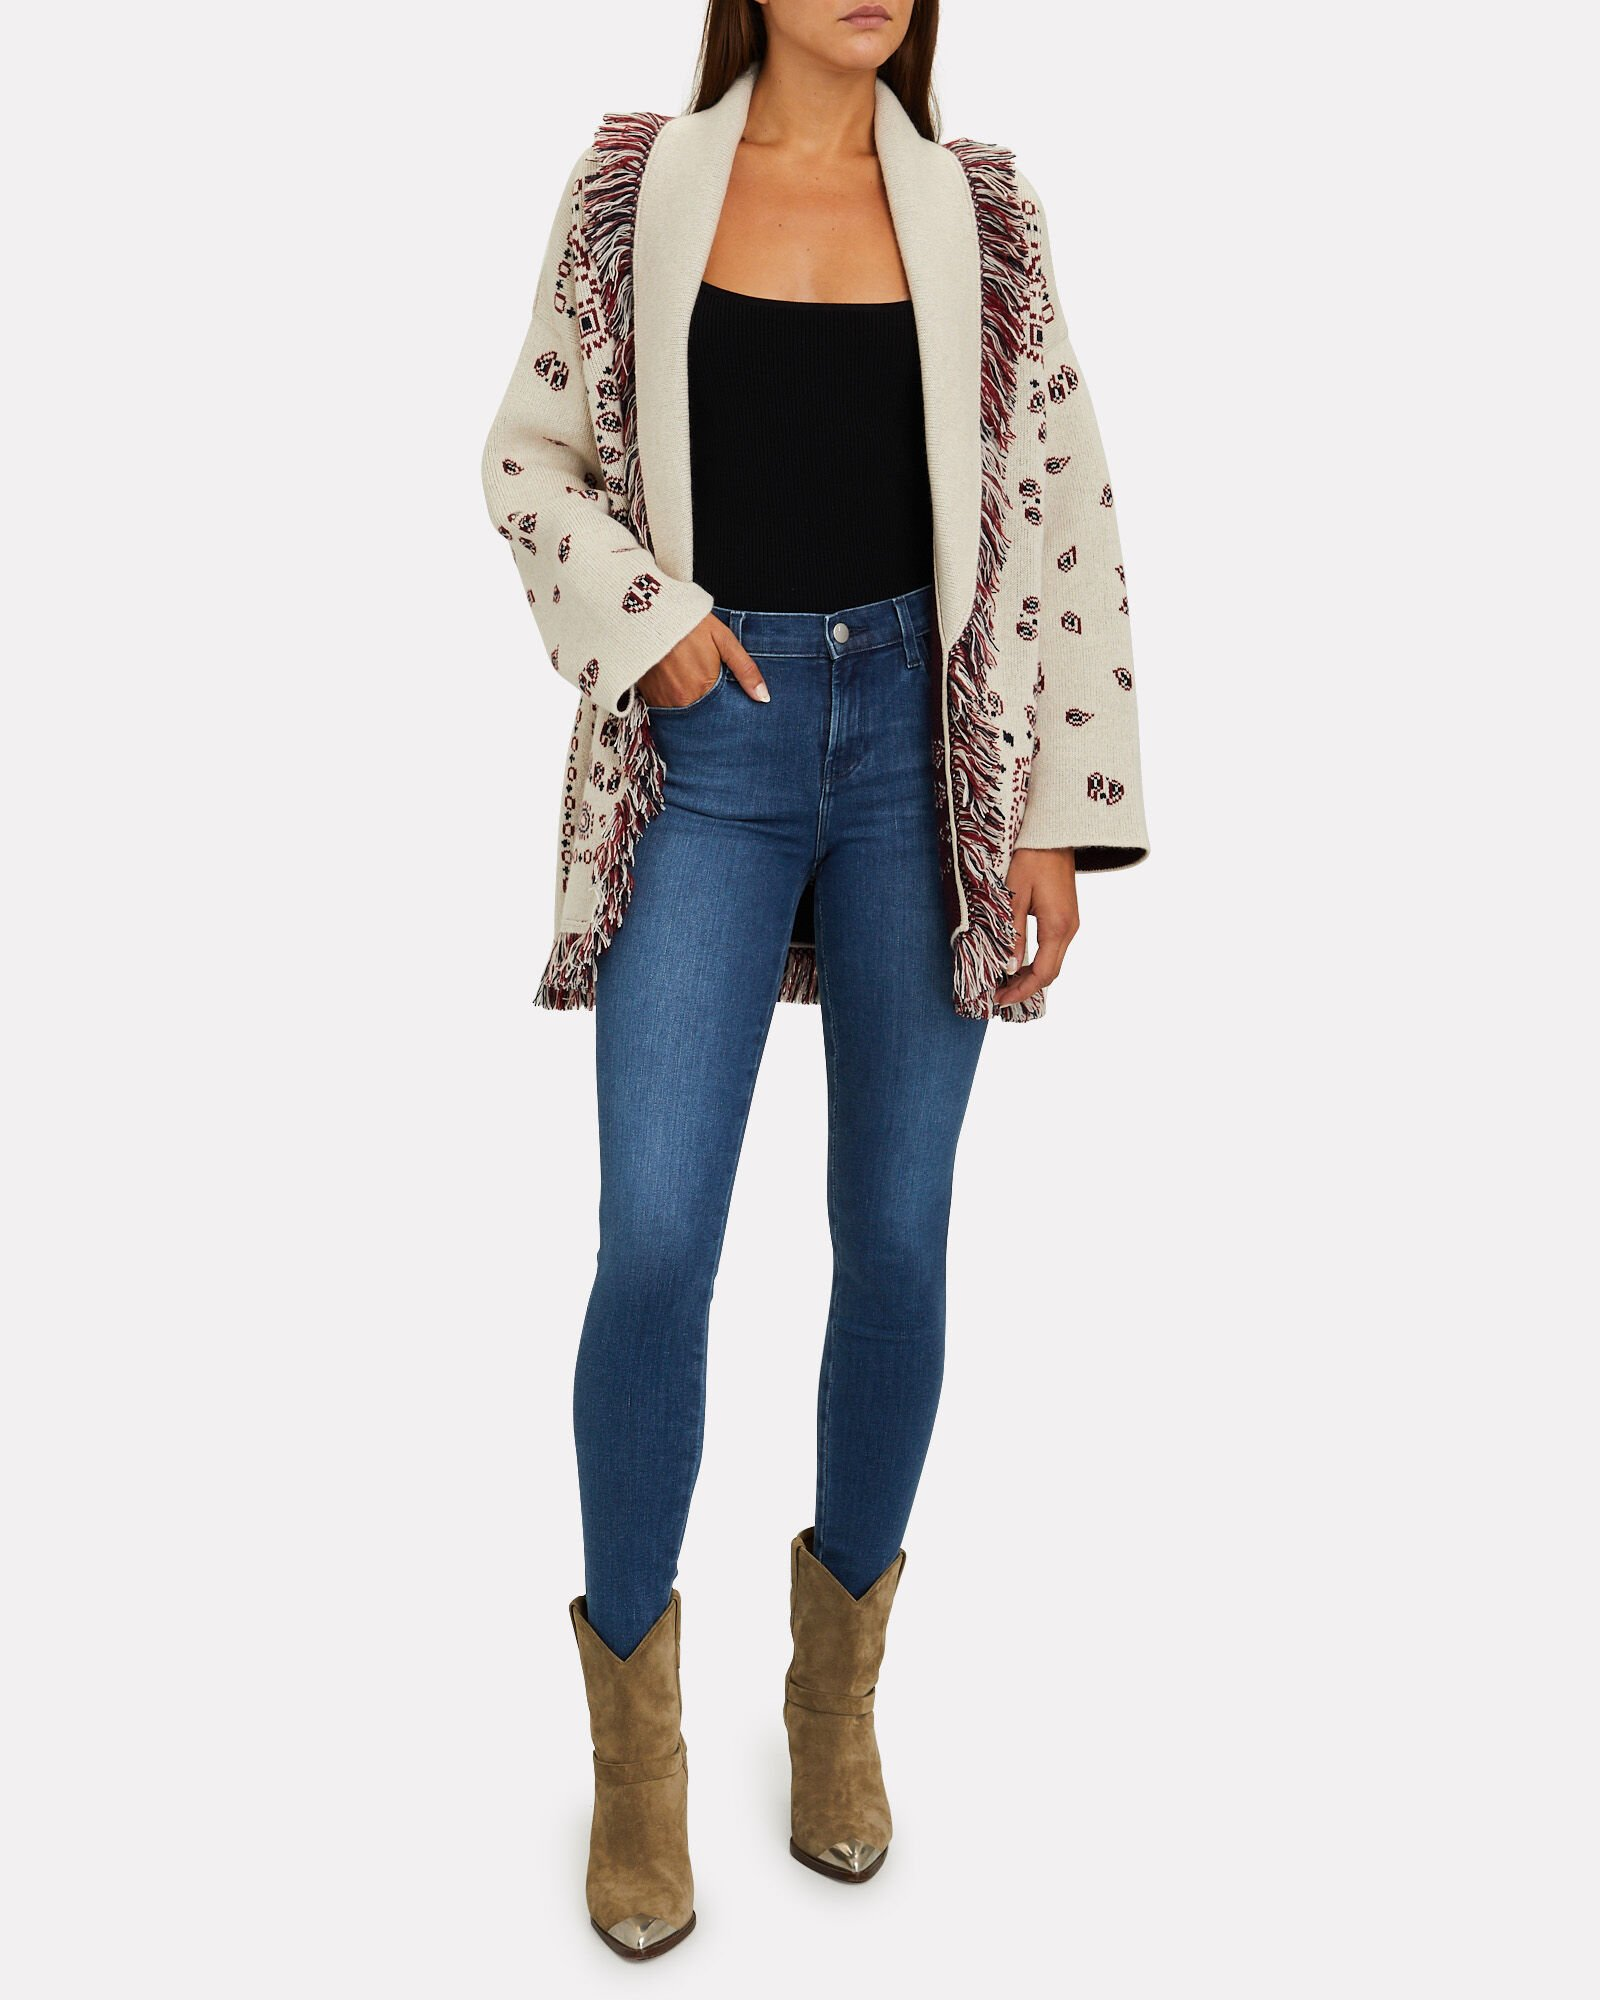 jeans and a cardigan